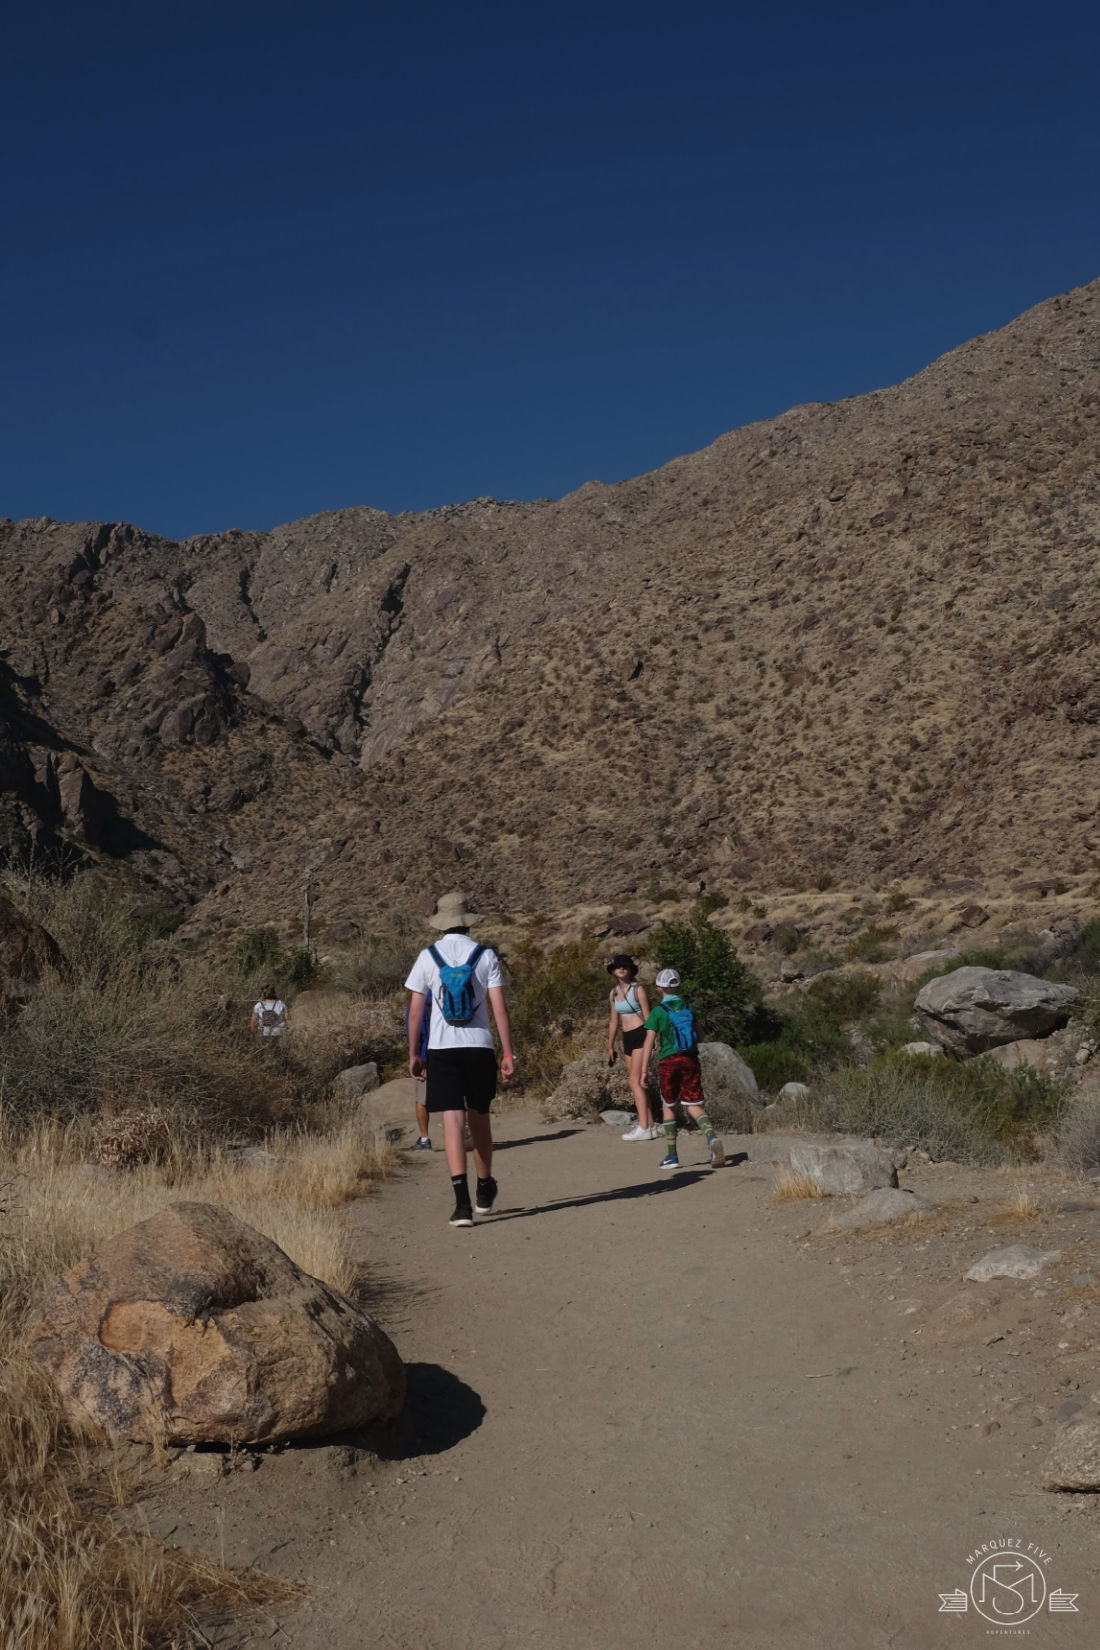 Starting the hike at 8am - already 90 degrees! Tahquitz Falls Palm Springs, California